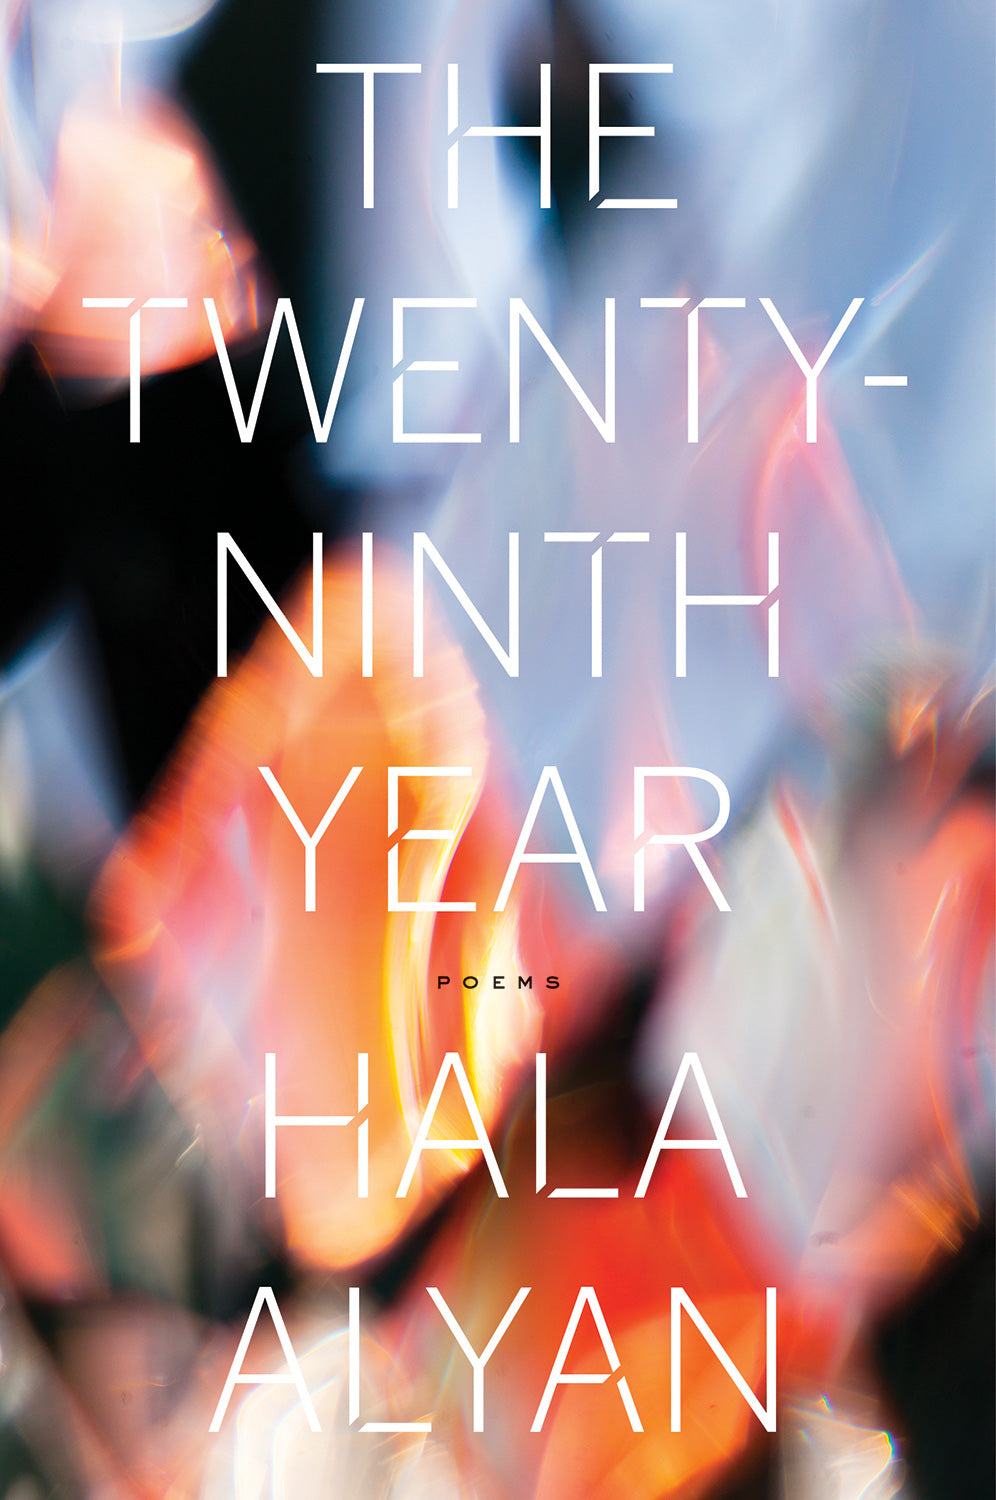 The Twenty-Ninth Year by Hala Alyan